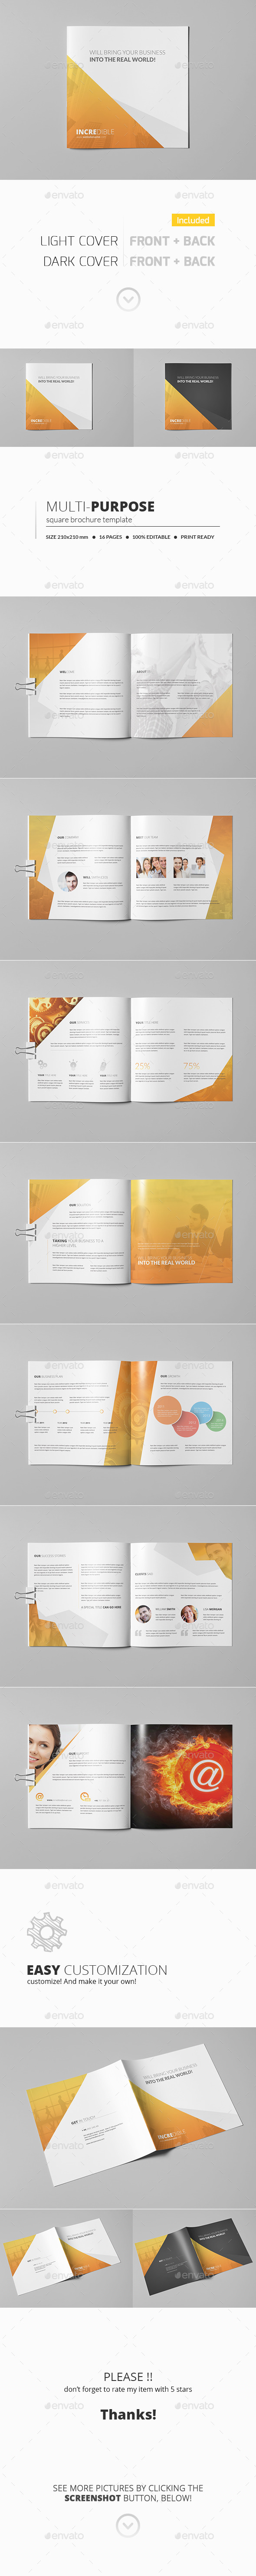 GraphicRiver Multipurpose Square Brochure Template 11242541